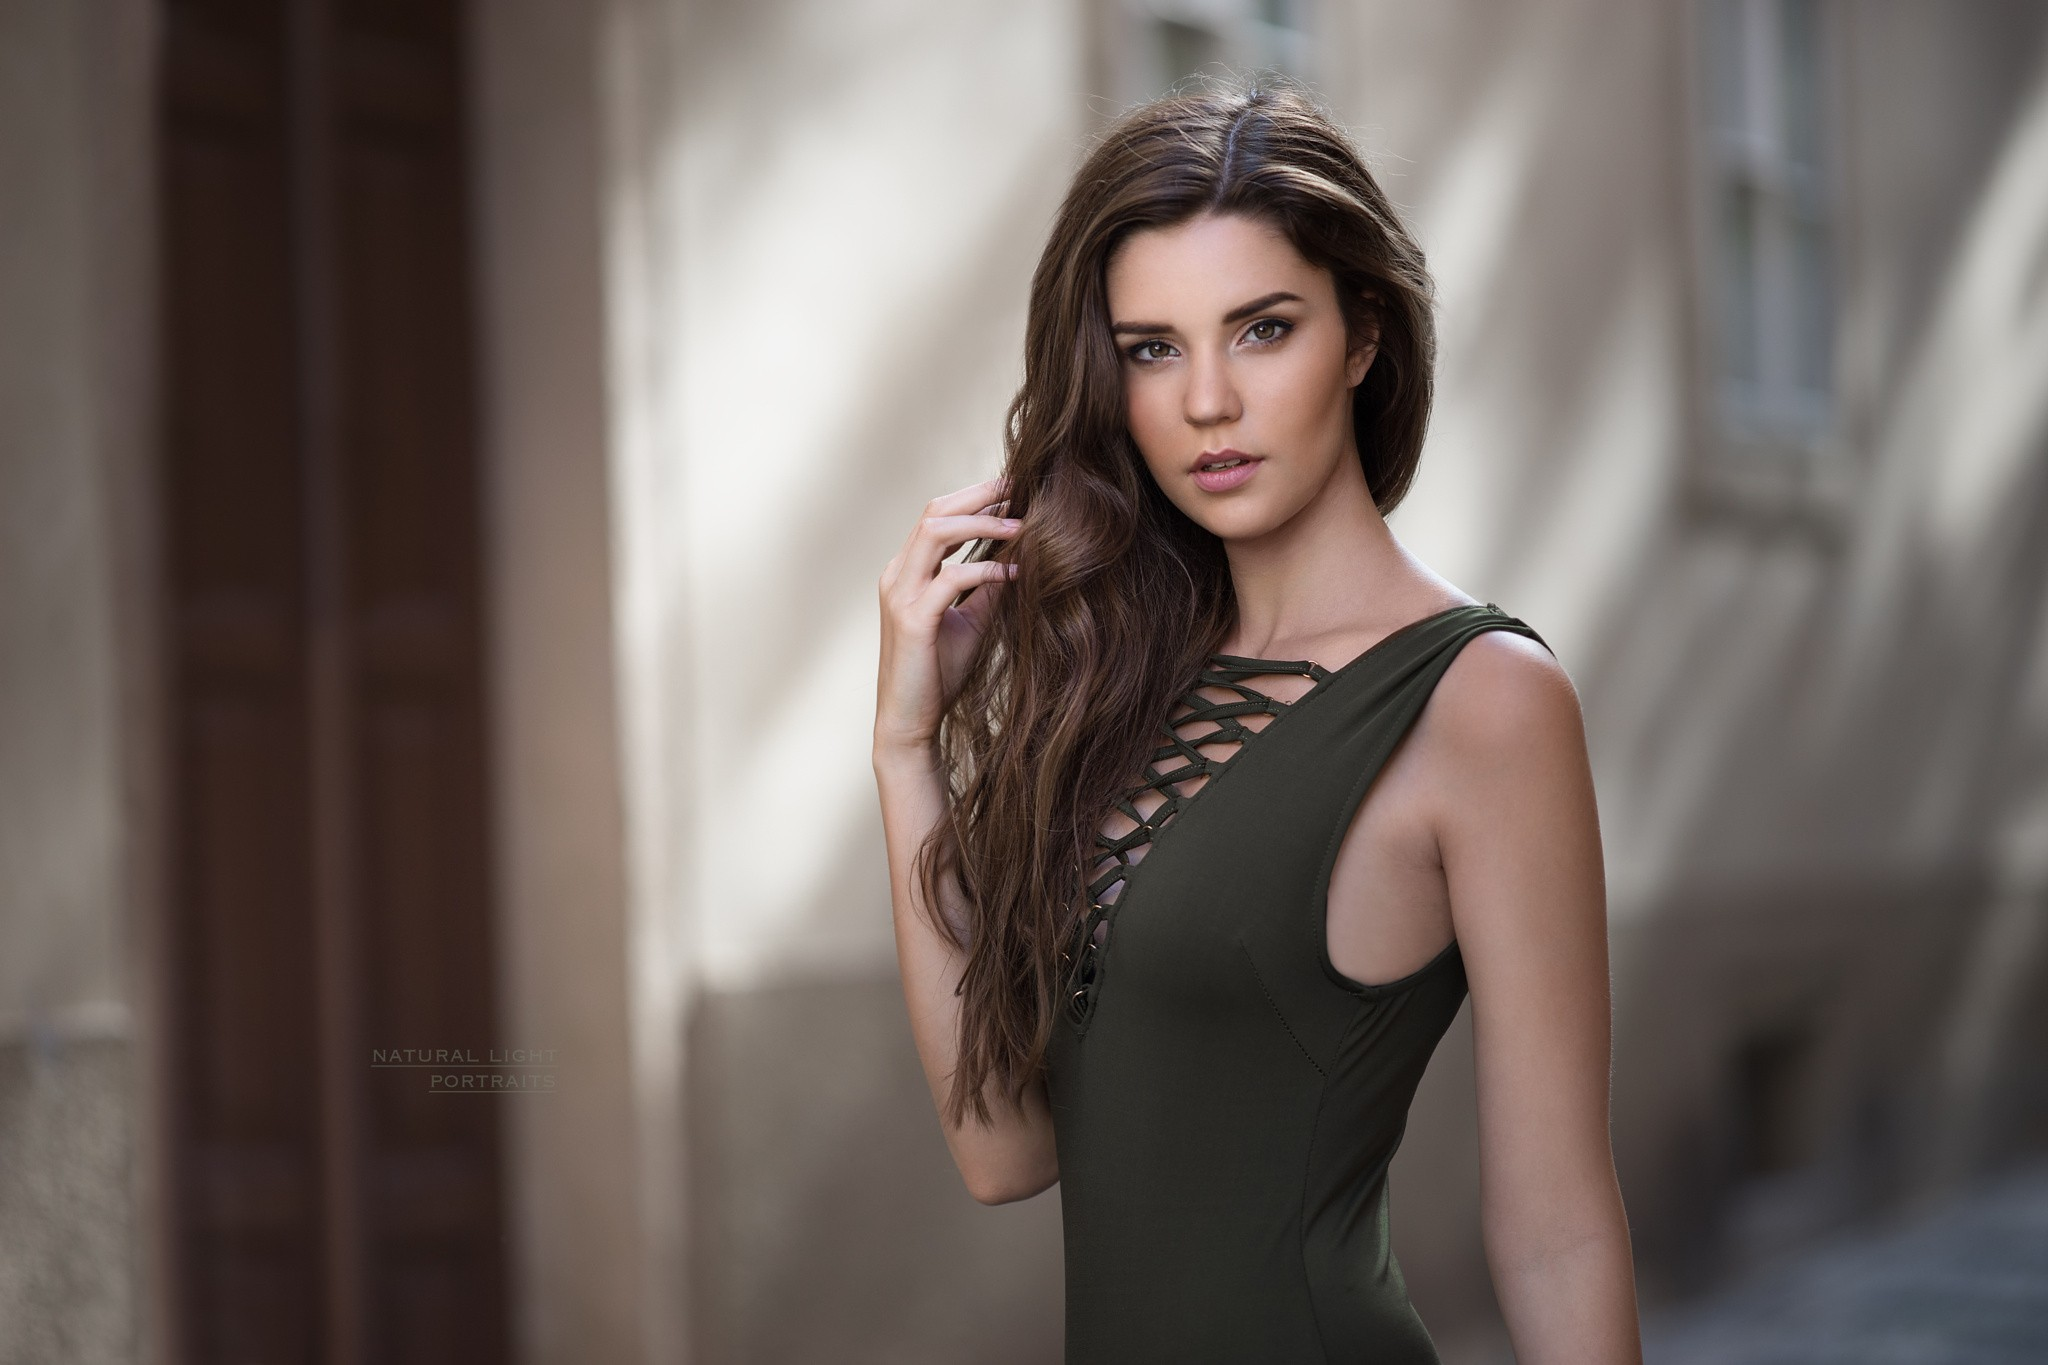 2048x1365 - Odette Annable Wallpapers 21